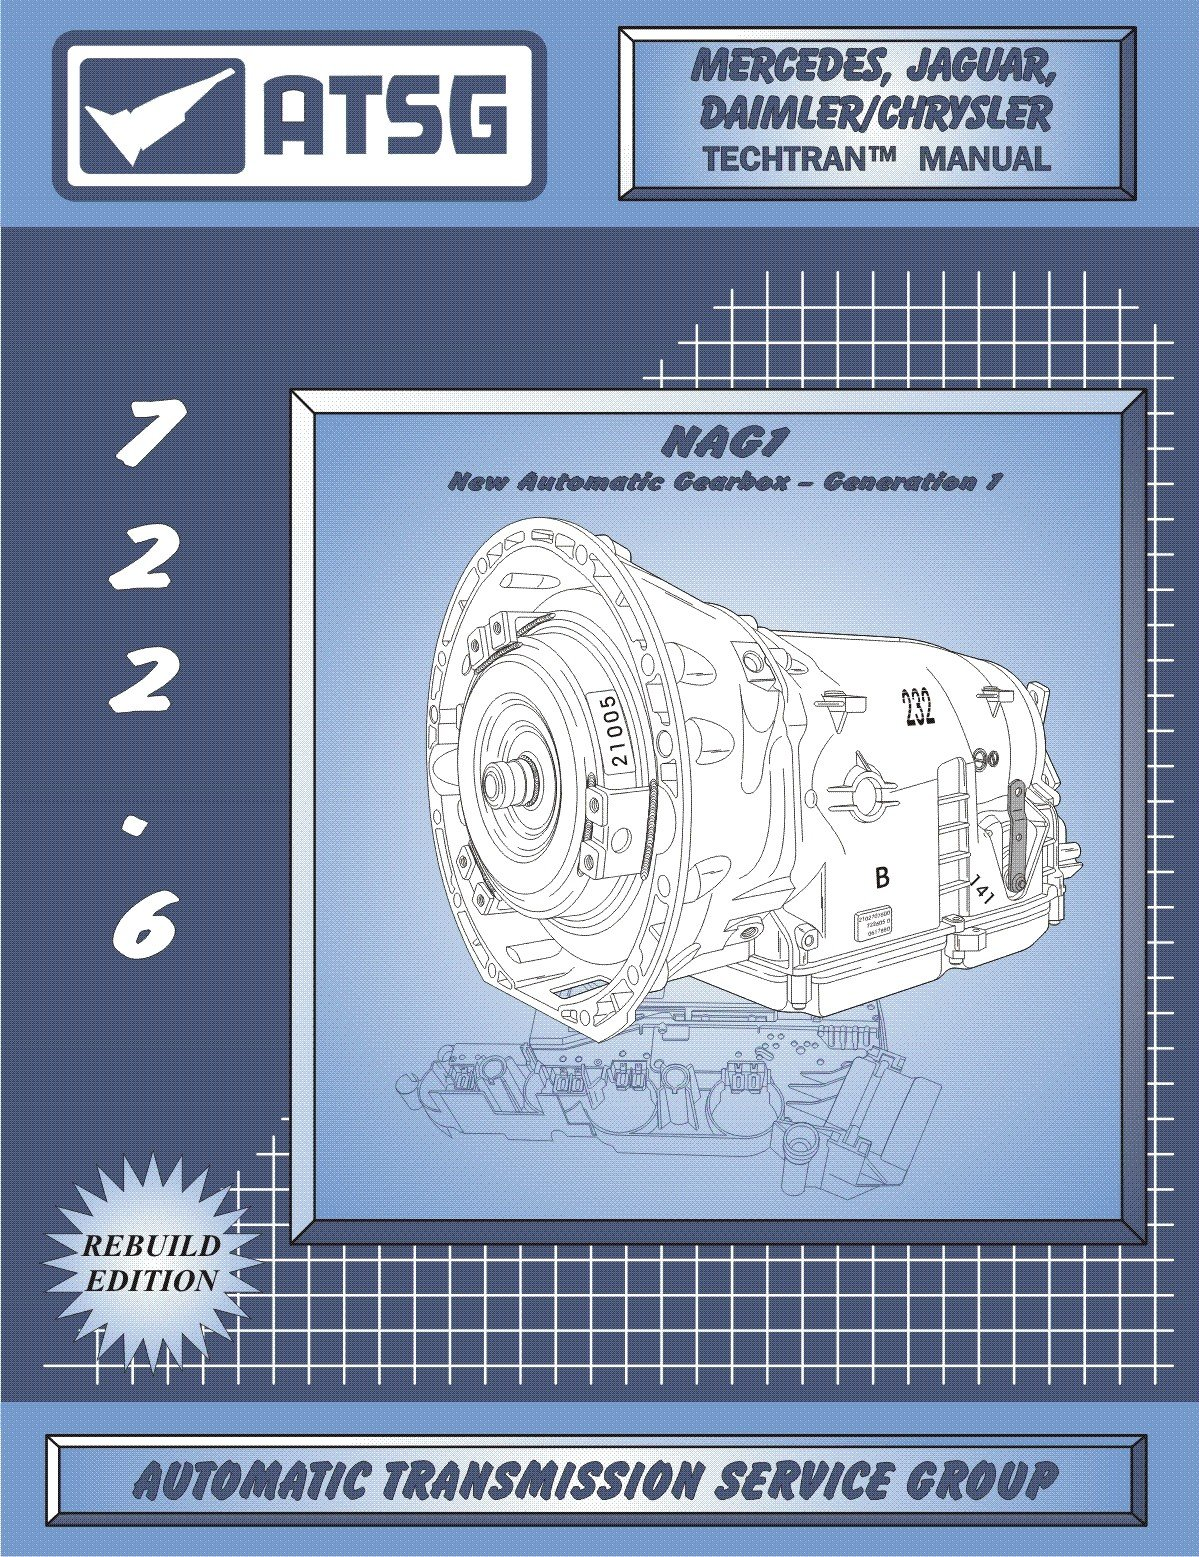 Buy Atsg 5r55s 5r55w Automatic Transmission Repair Manual 2002 Explorer Diagram Wiring Schematic Mercedes 7226 Nag 1 Fluid Dipstick Tool Best Book Available